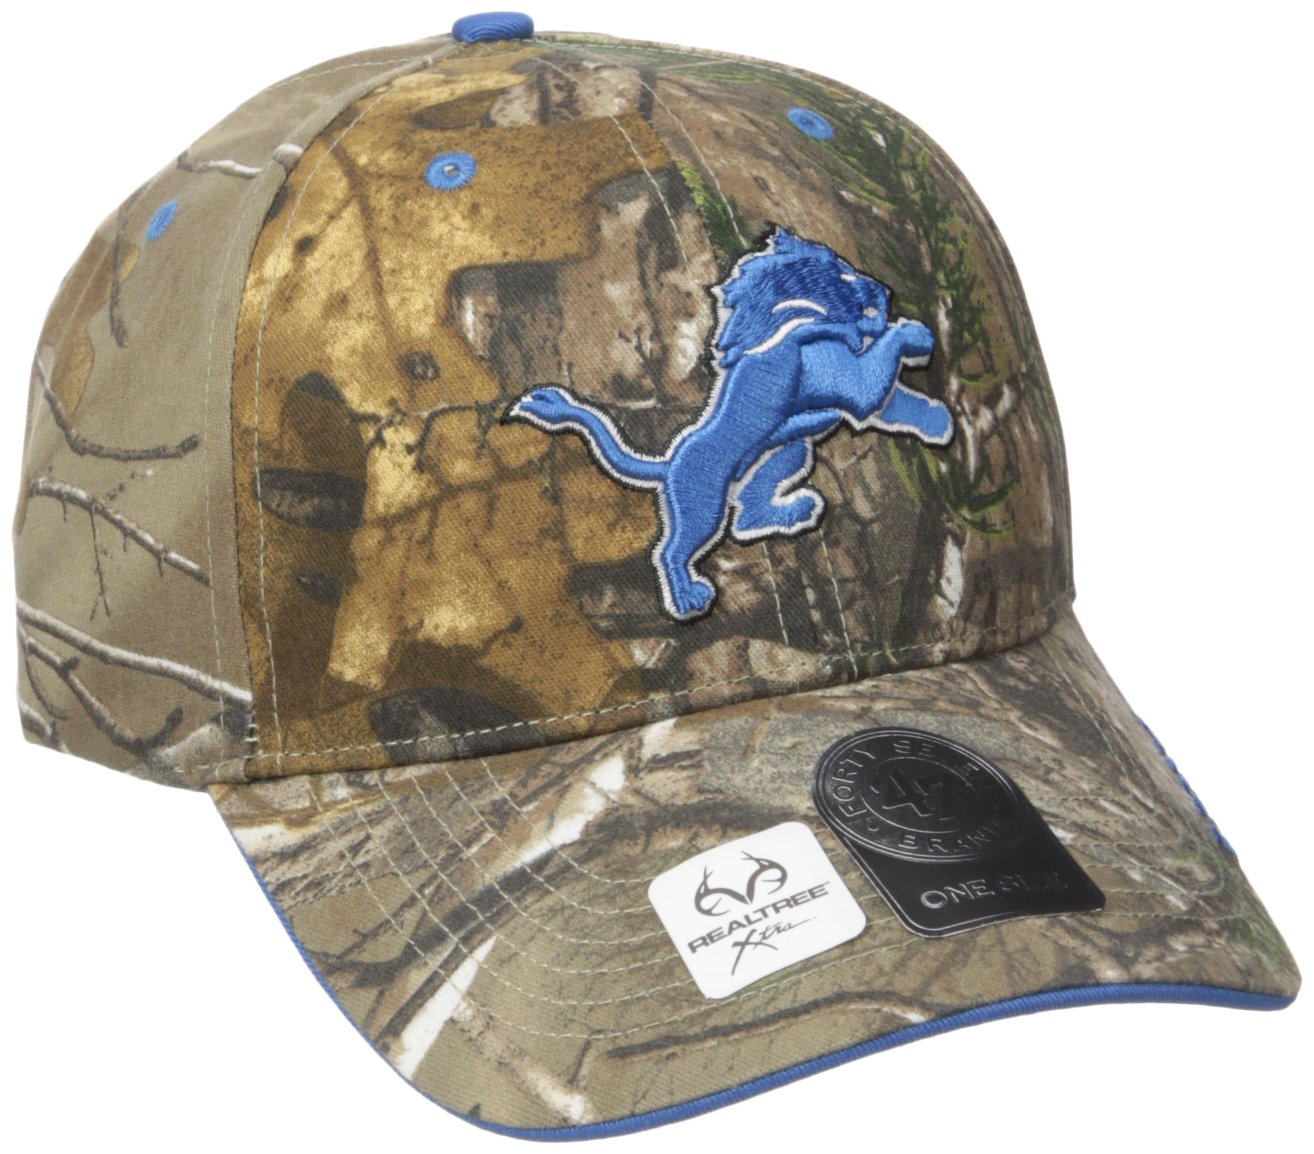 '47 Brand NFL Realtree Frost '47 MVP Adjustable Hat One Size Realtree Camo Twins Enterprise/47 Brand NFL Realtree Frost MVP